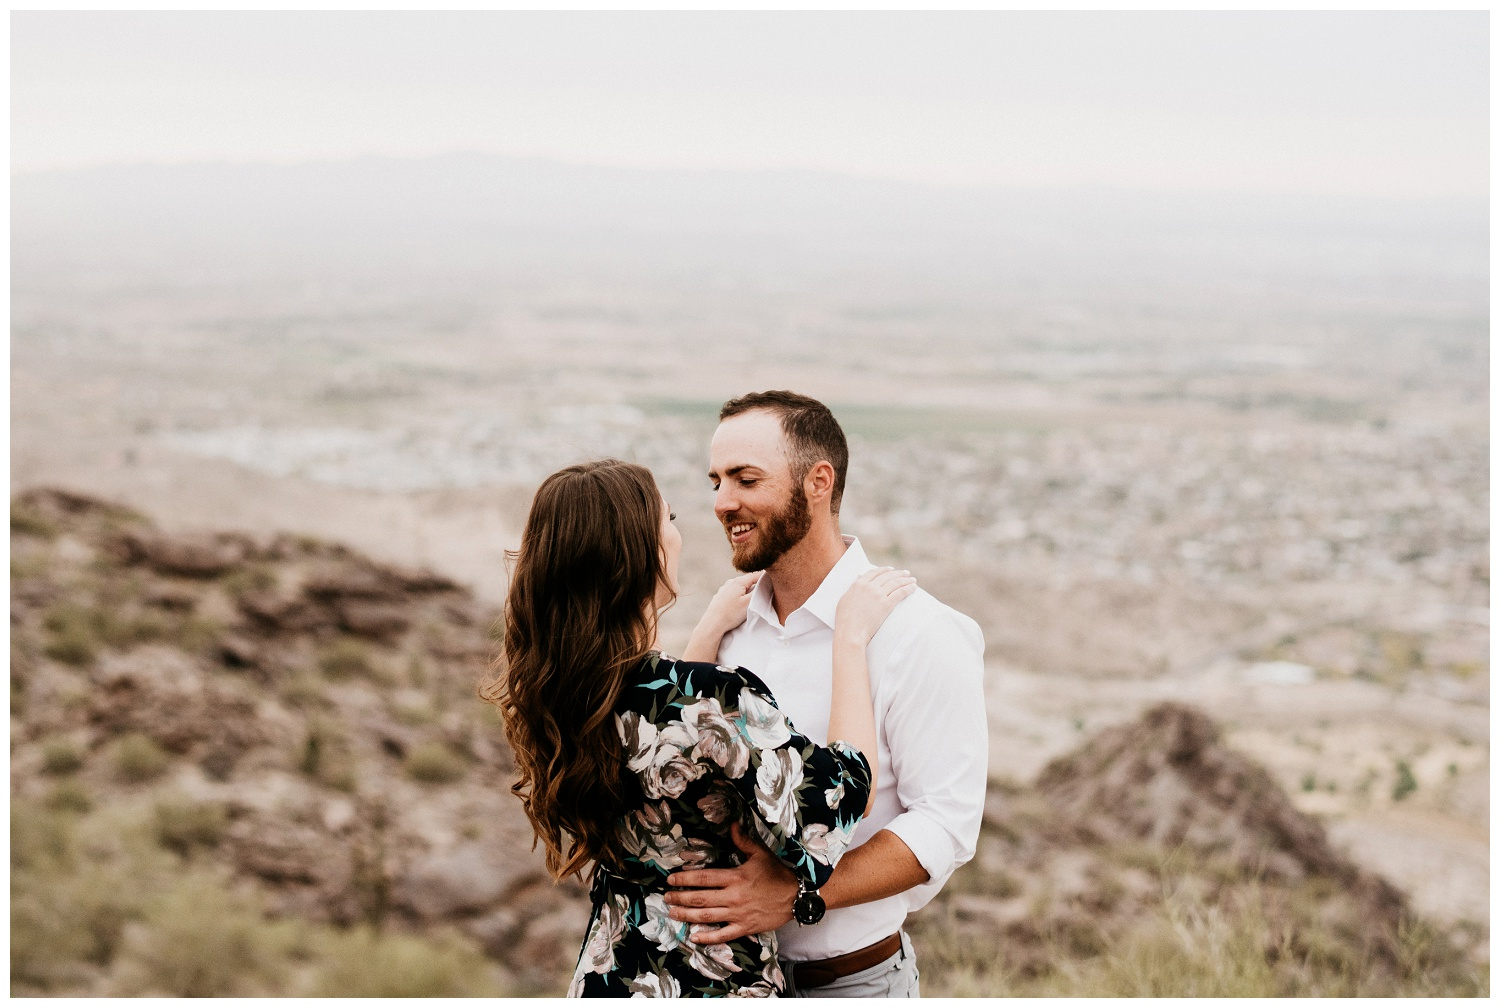 South Mountain Engagement Session Phoenix Wedding Photographer Ashtyn Nicole Photo 12